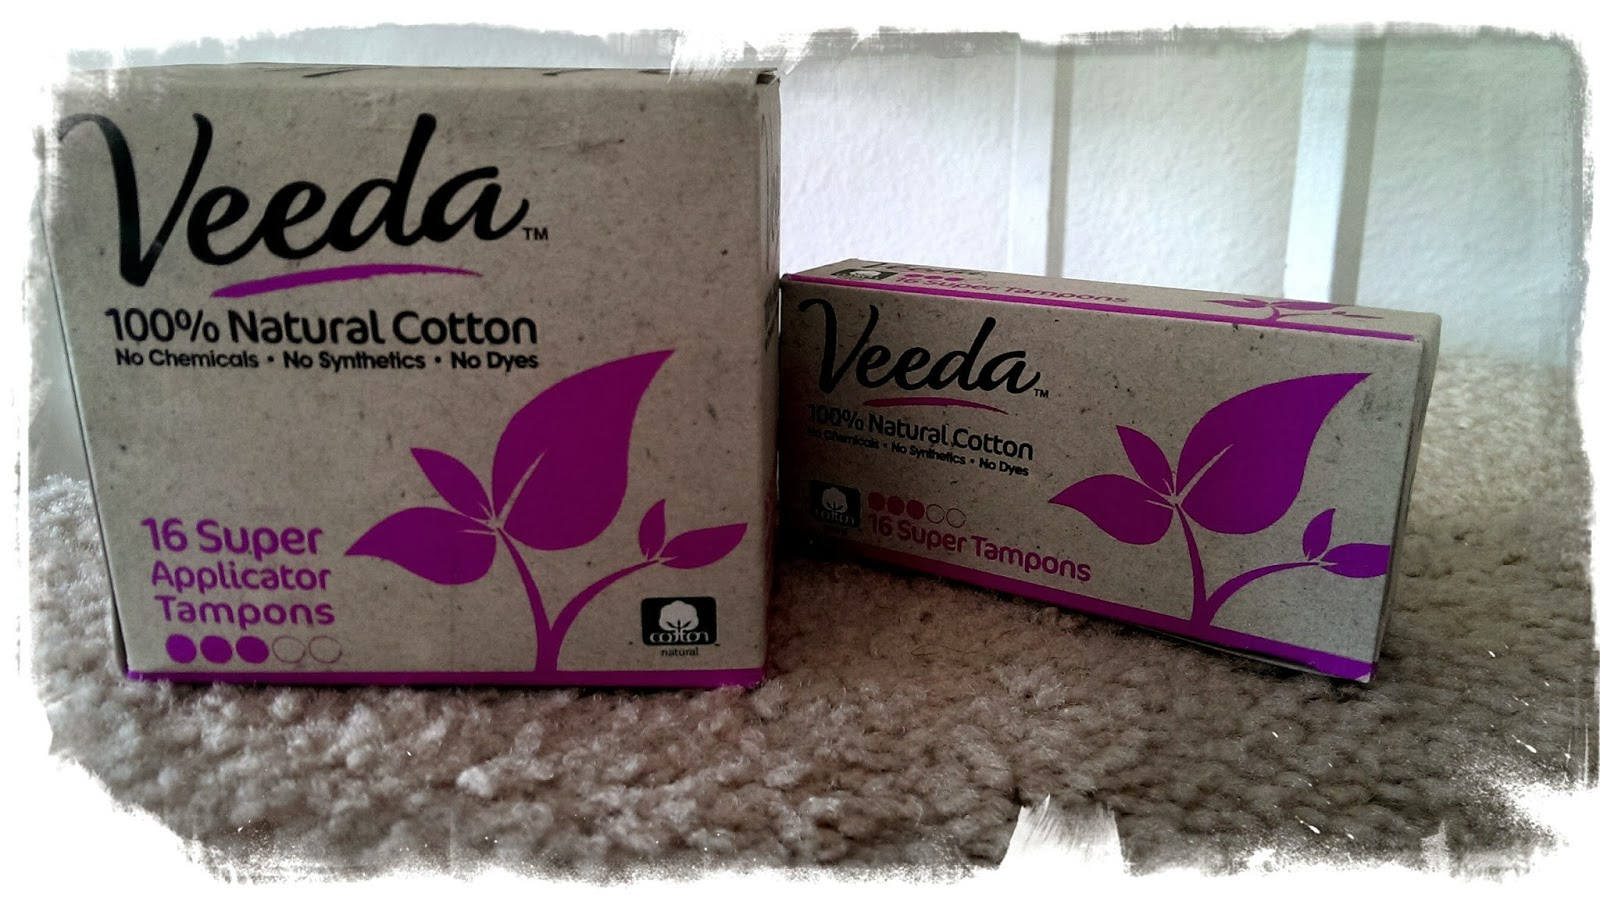 Veeda New Veeda Feminine Care Review - Feminine Care Products